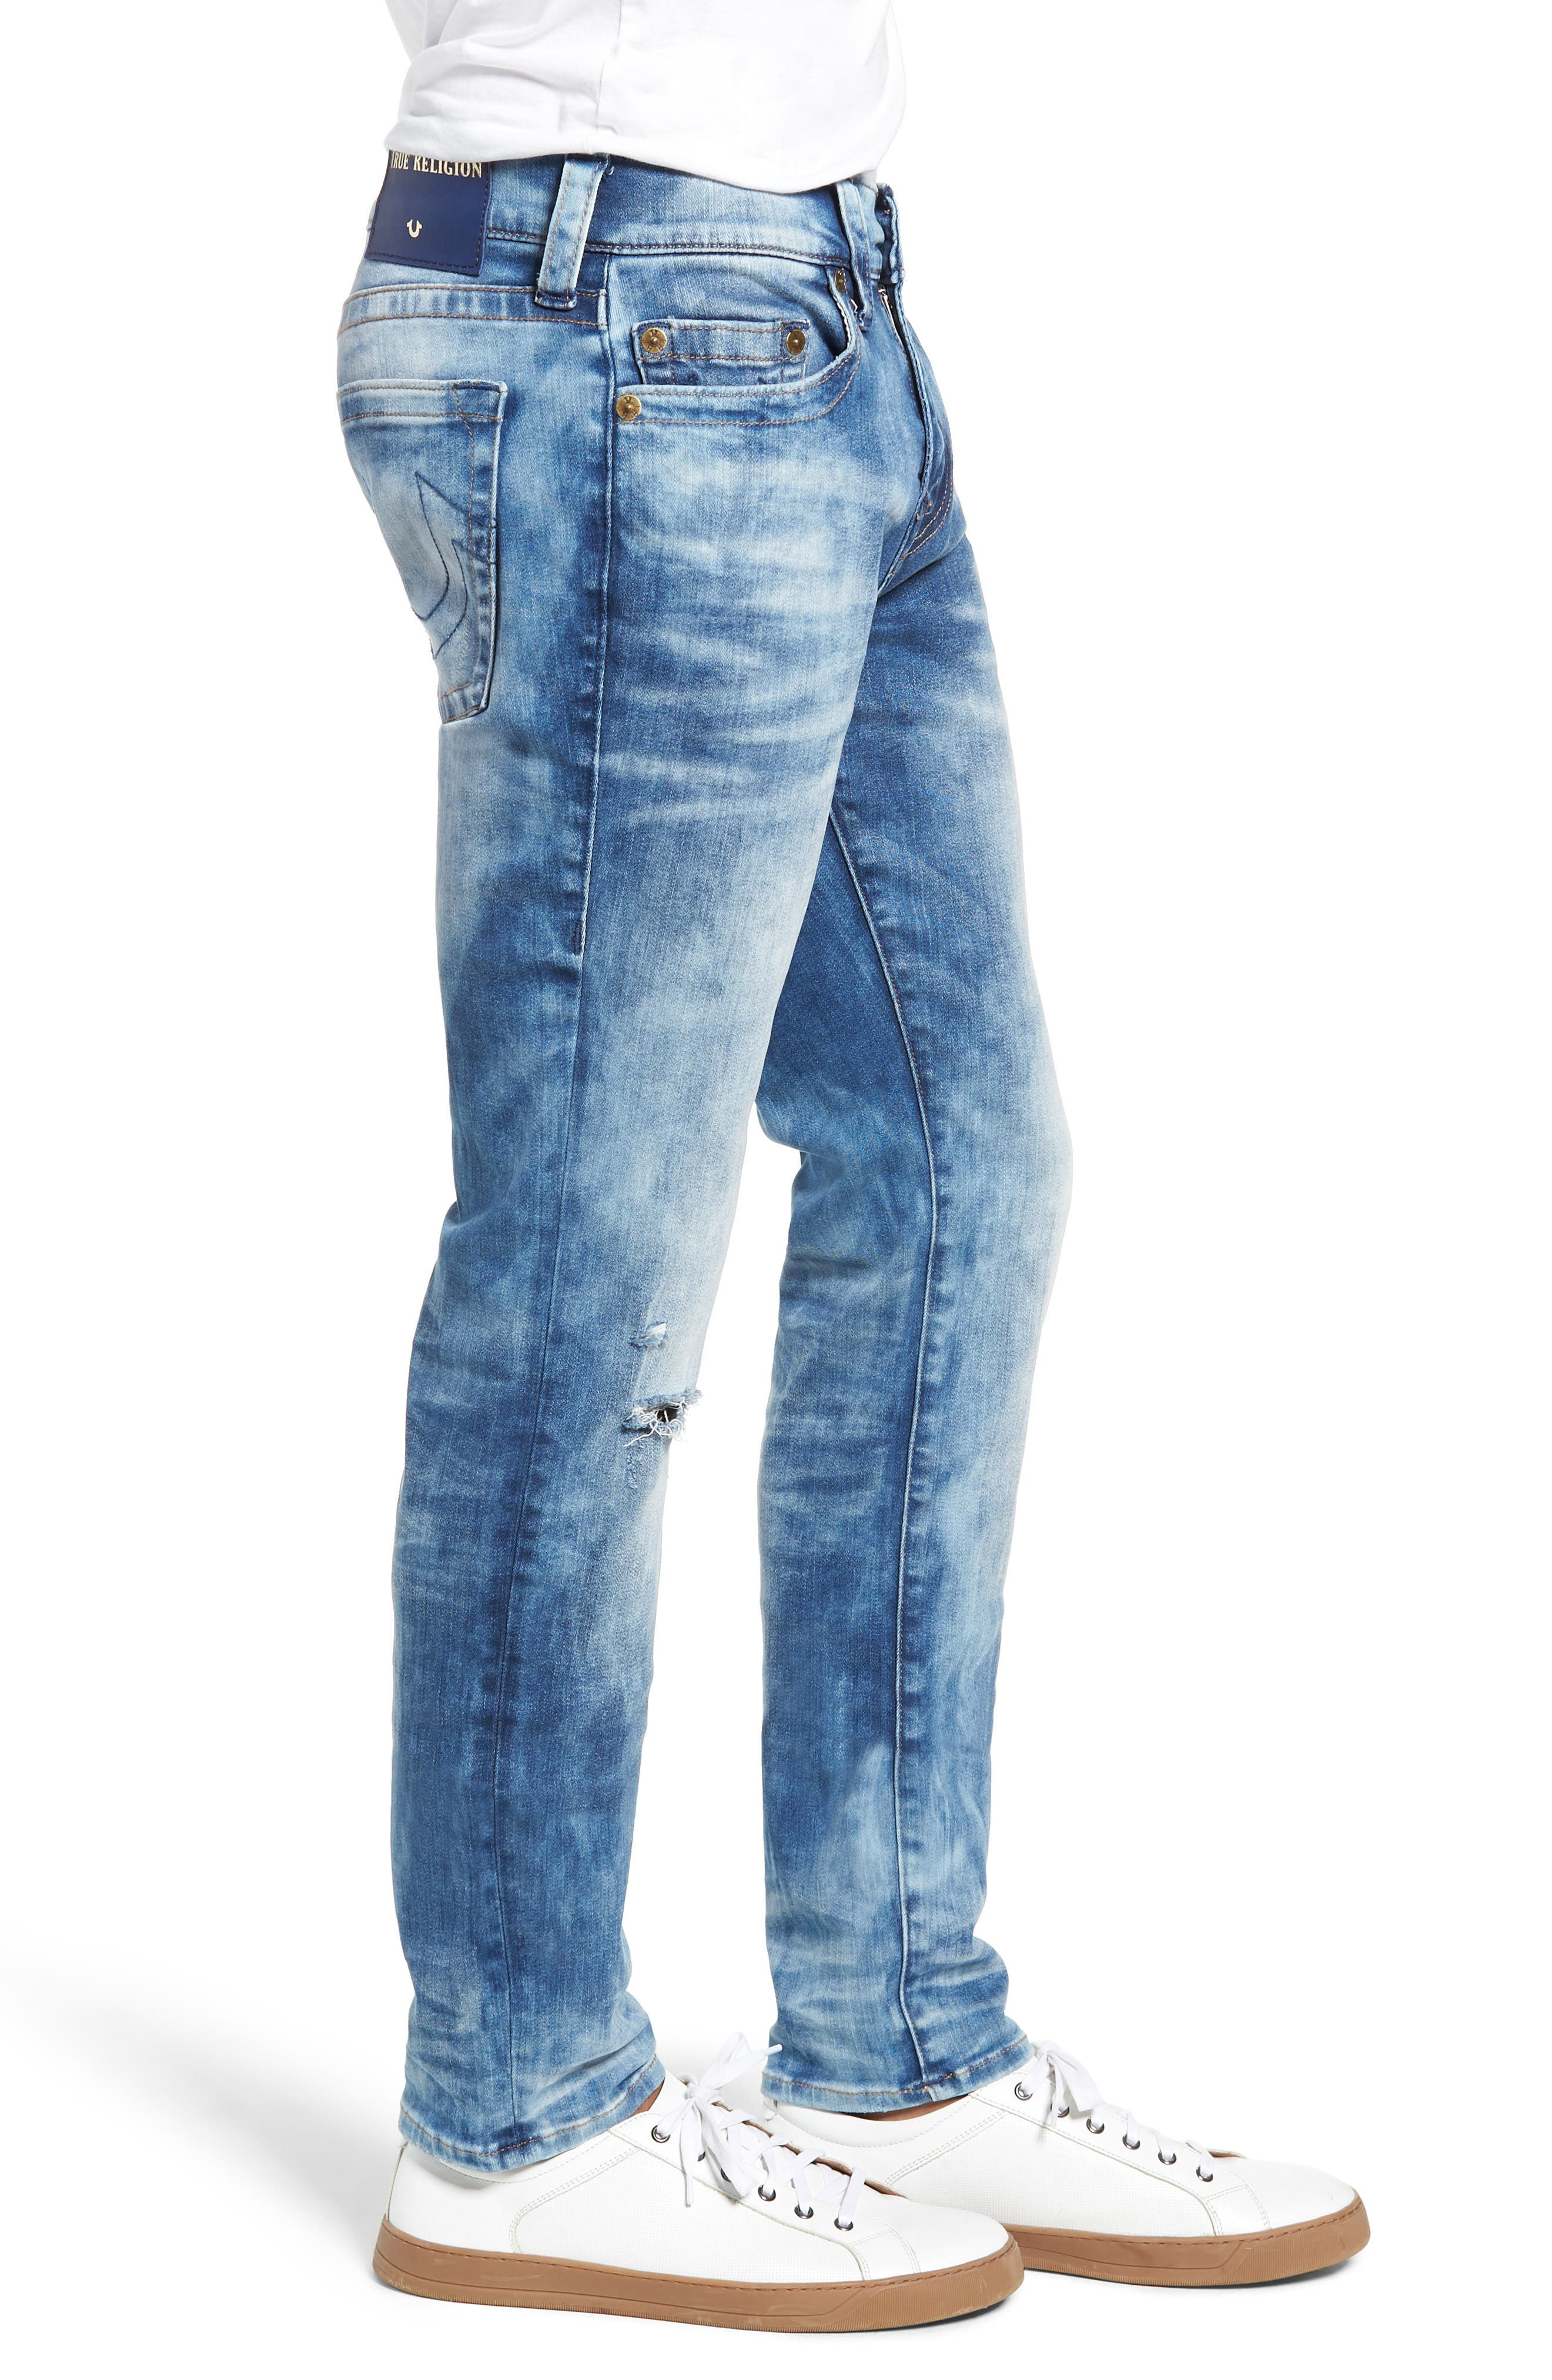 Rocco Skinny Fit Jeans,                             Alternate thumbnail 3, color,                             BLUE RIOT